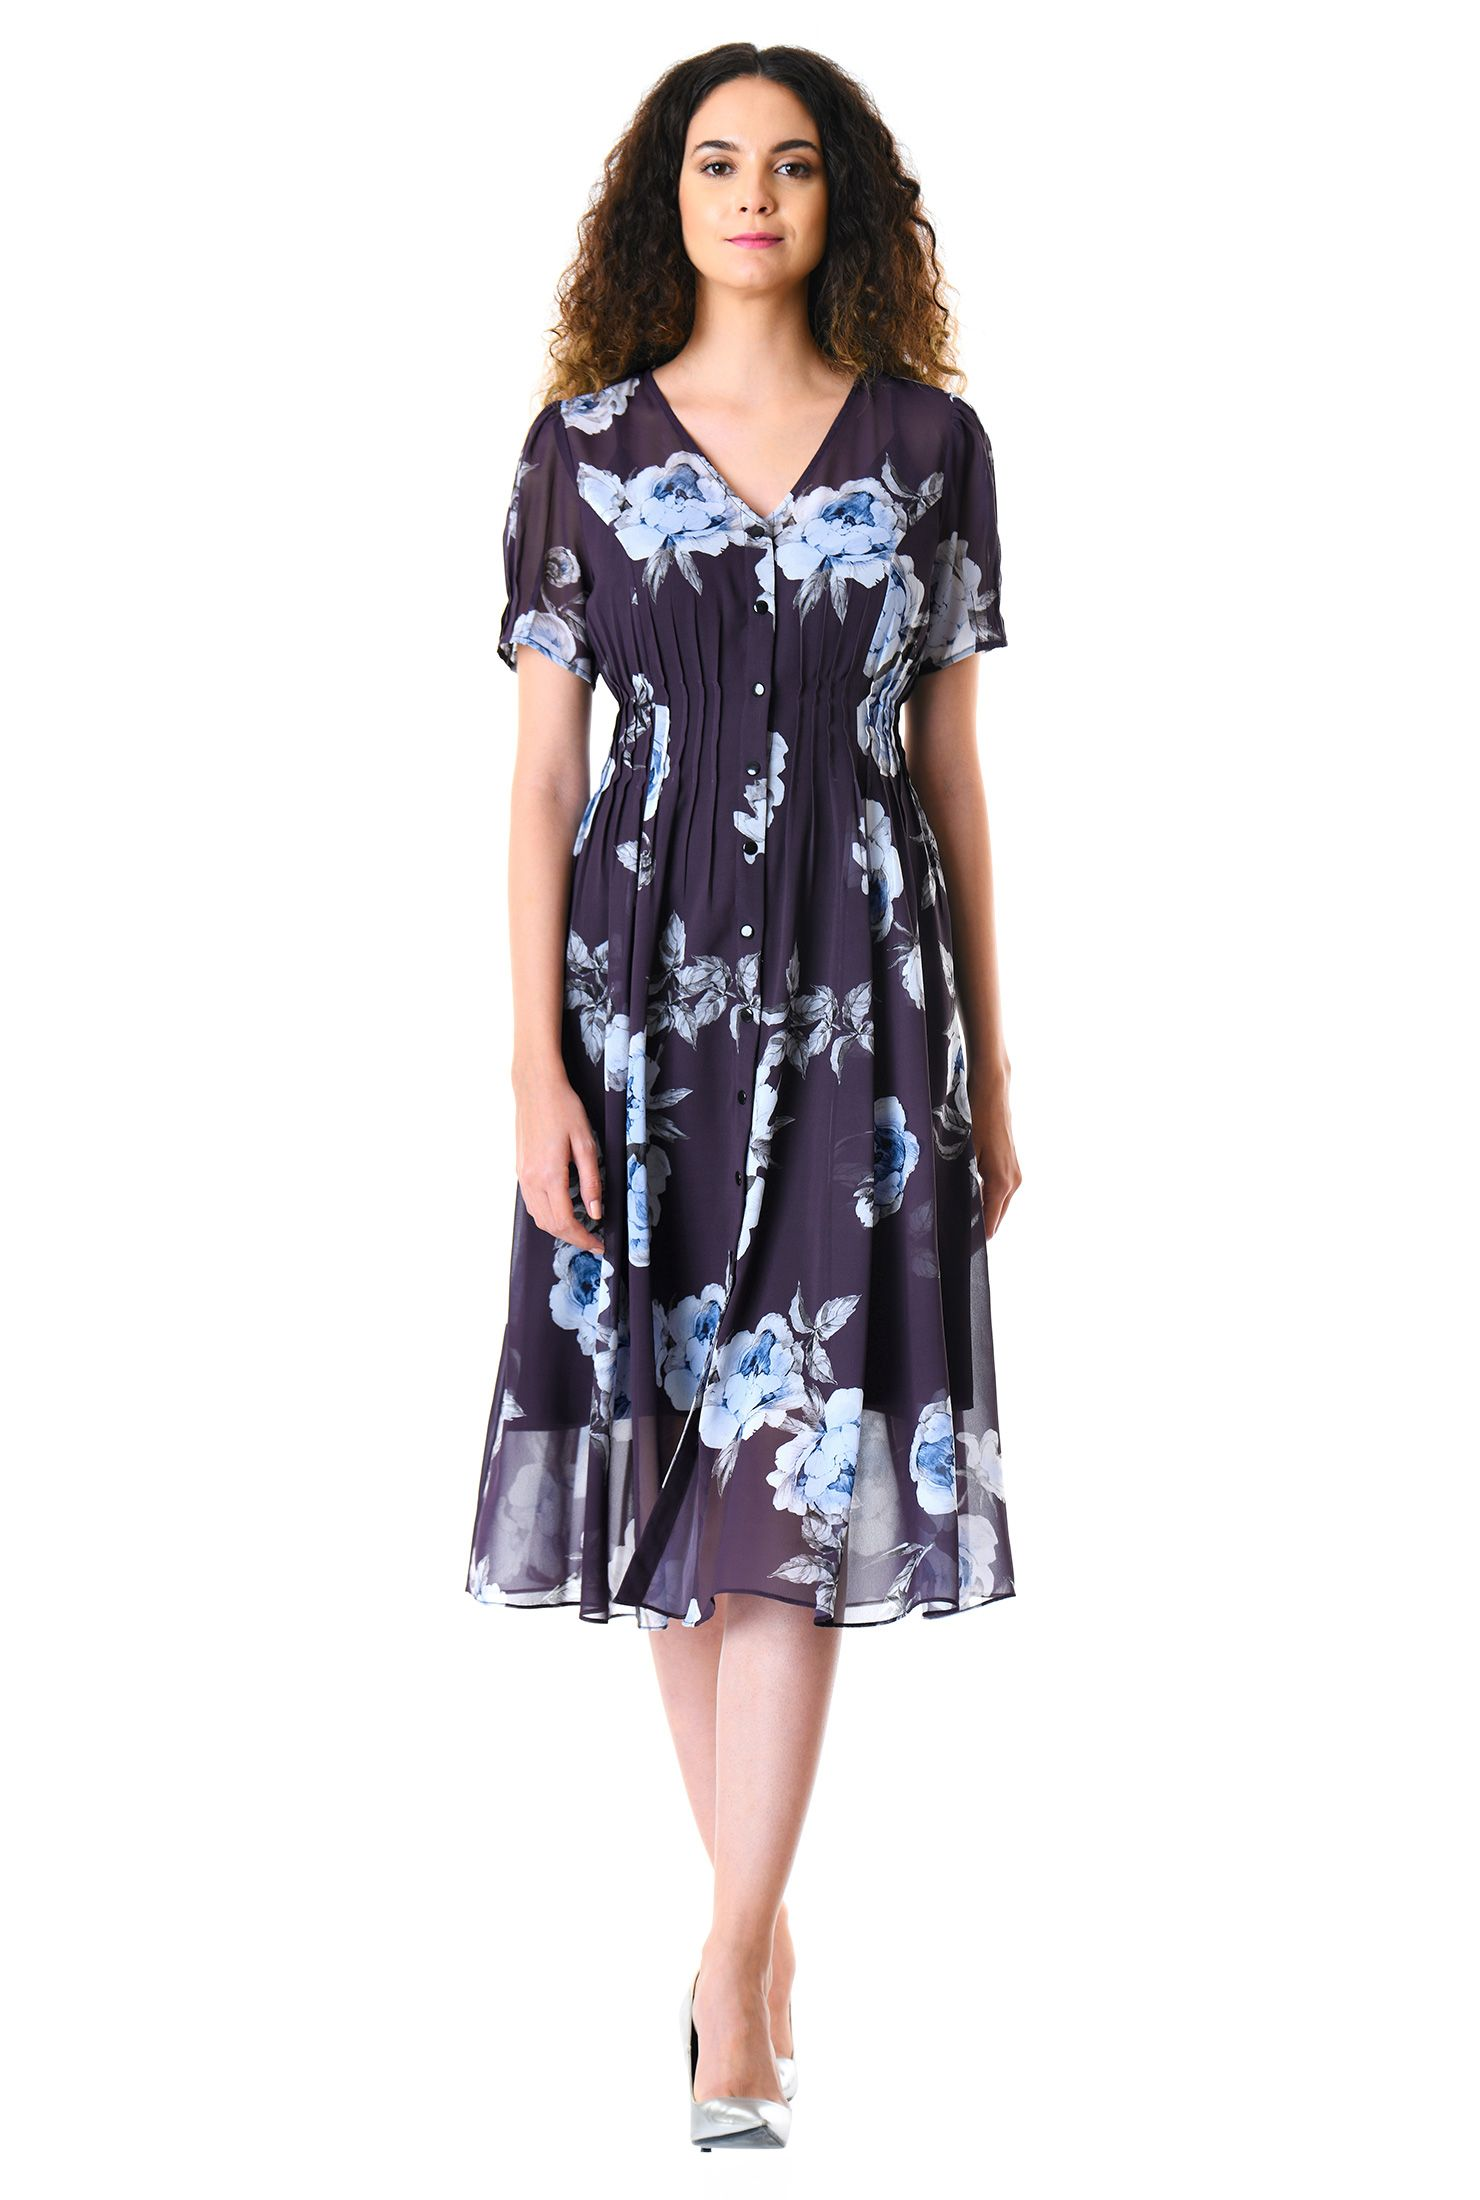 Torrid flannel dress  Bridesmaid dresses and casual wedding dresses from eShakti View the